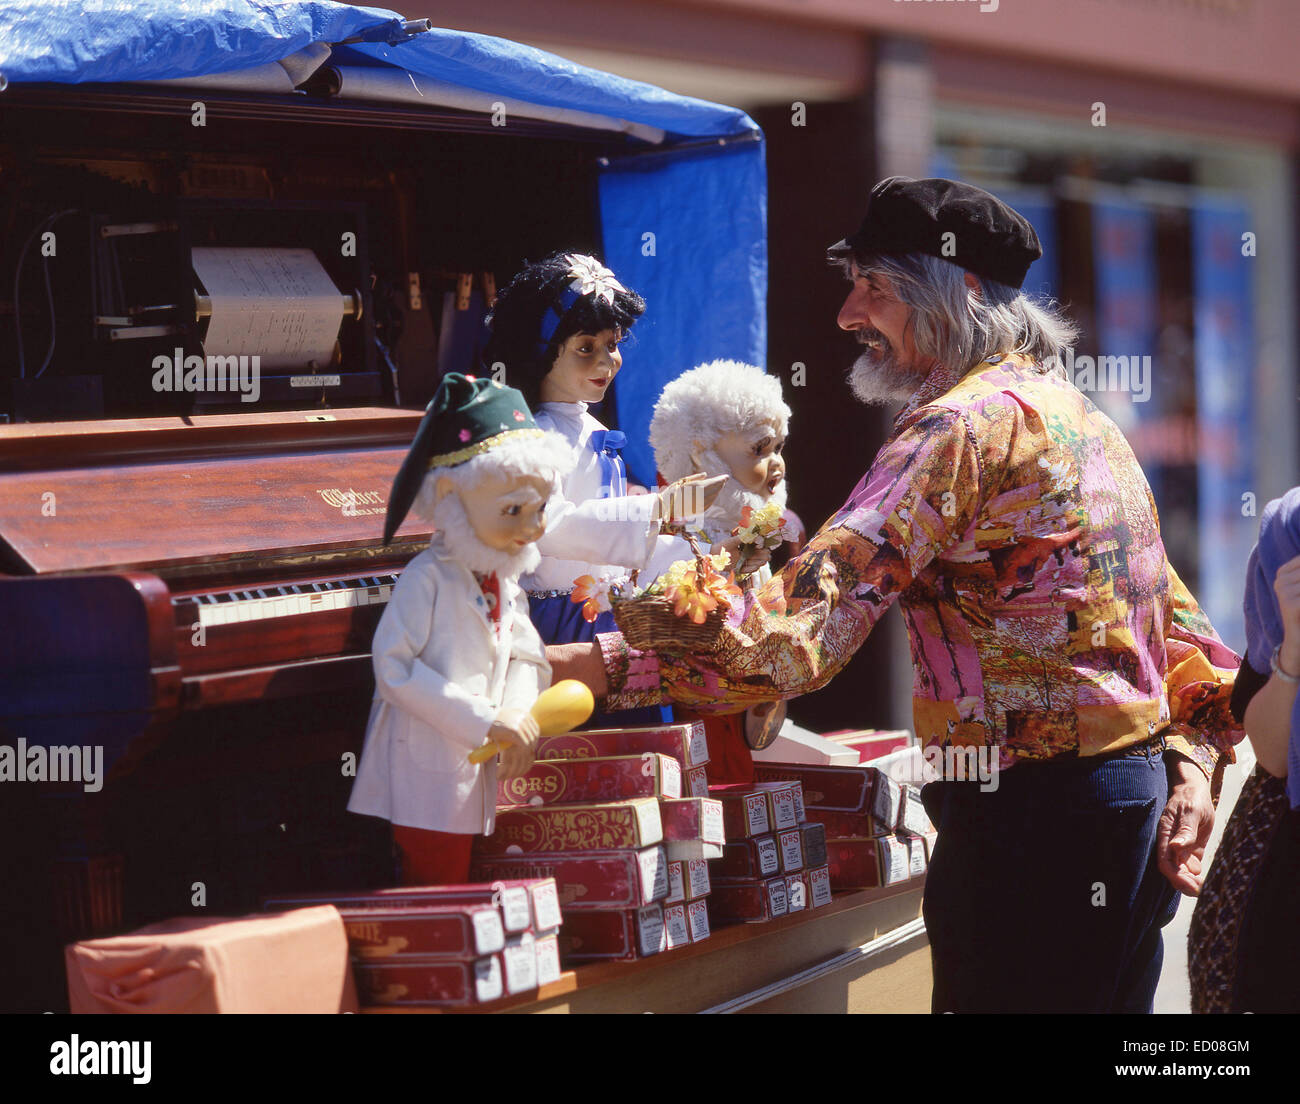 Street entertainer with puppets, Norwich Market, Market Place, Norfolk, England, United Kingdom - Stock Image